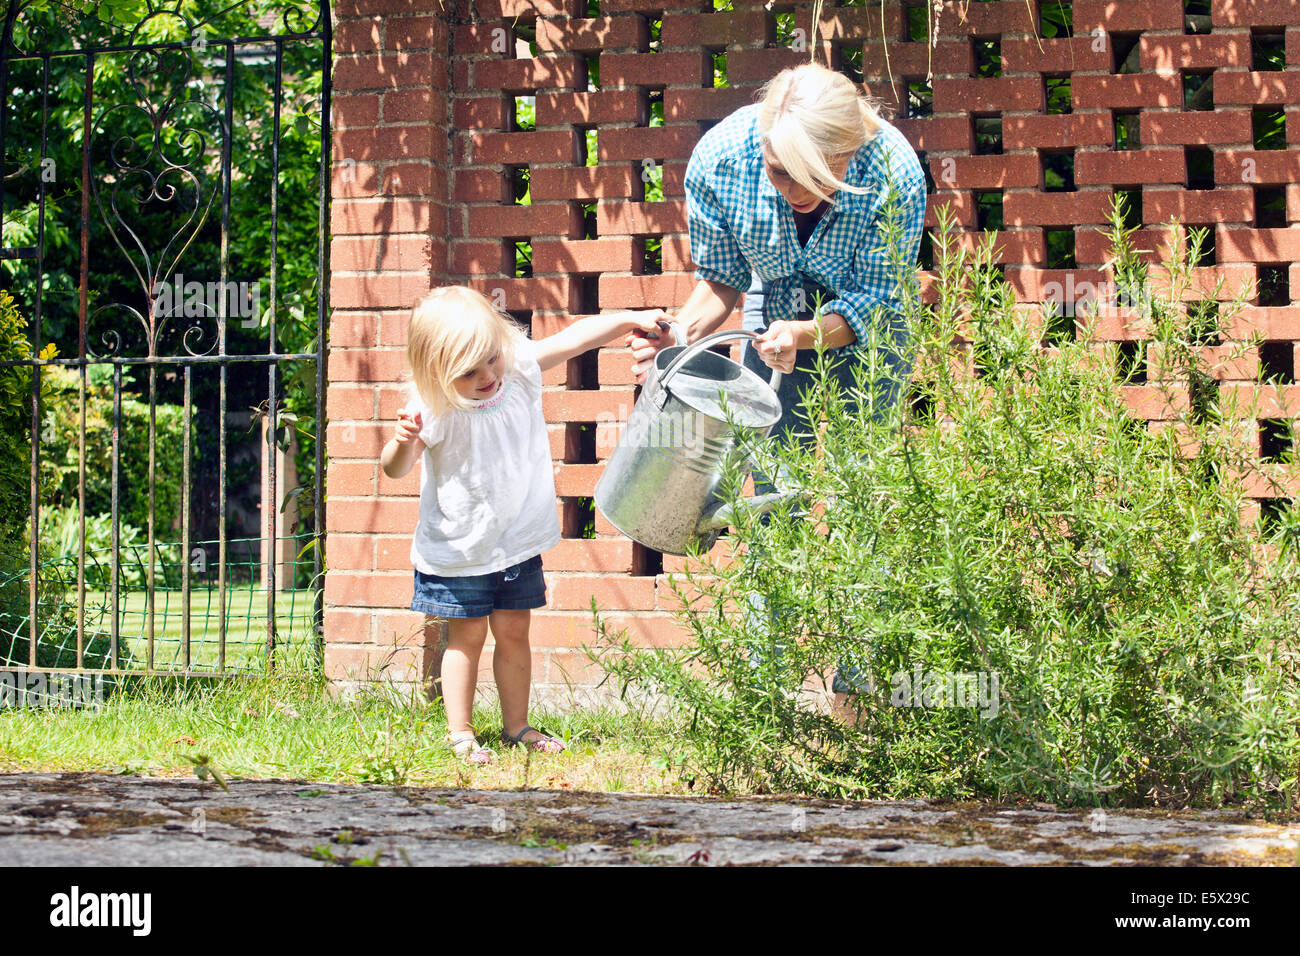 Female toddler helping mother with watering can in garden Stock Photo